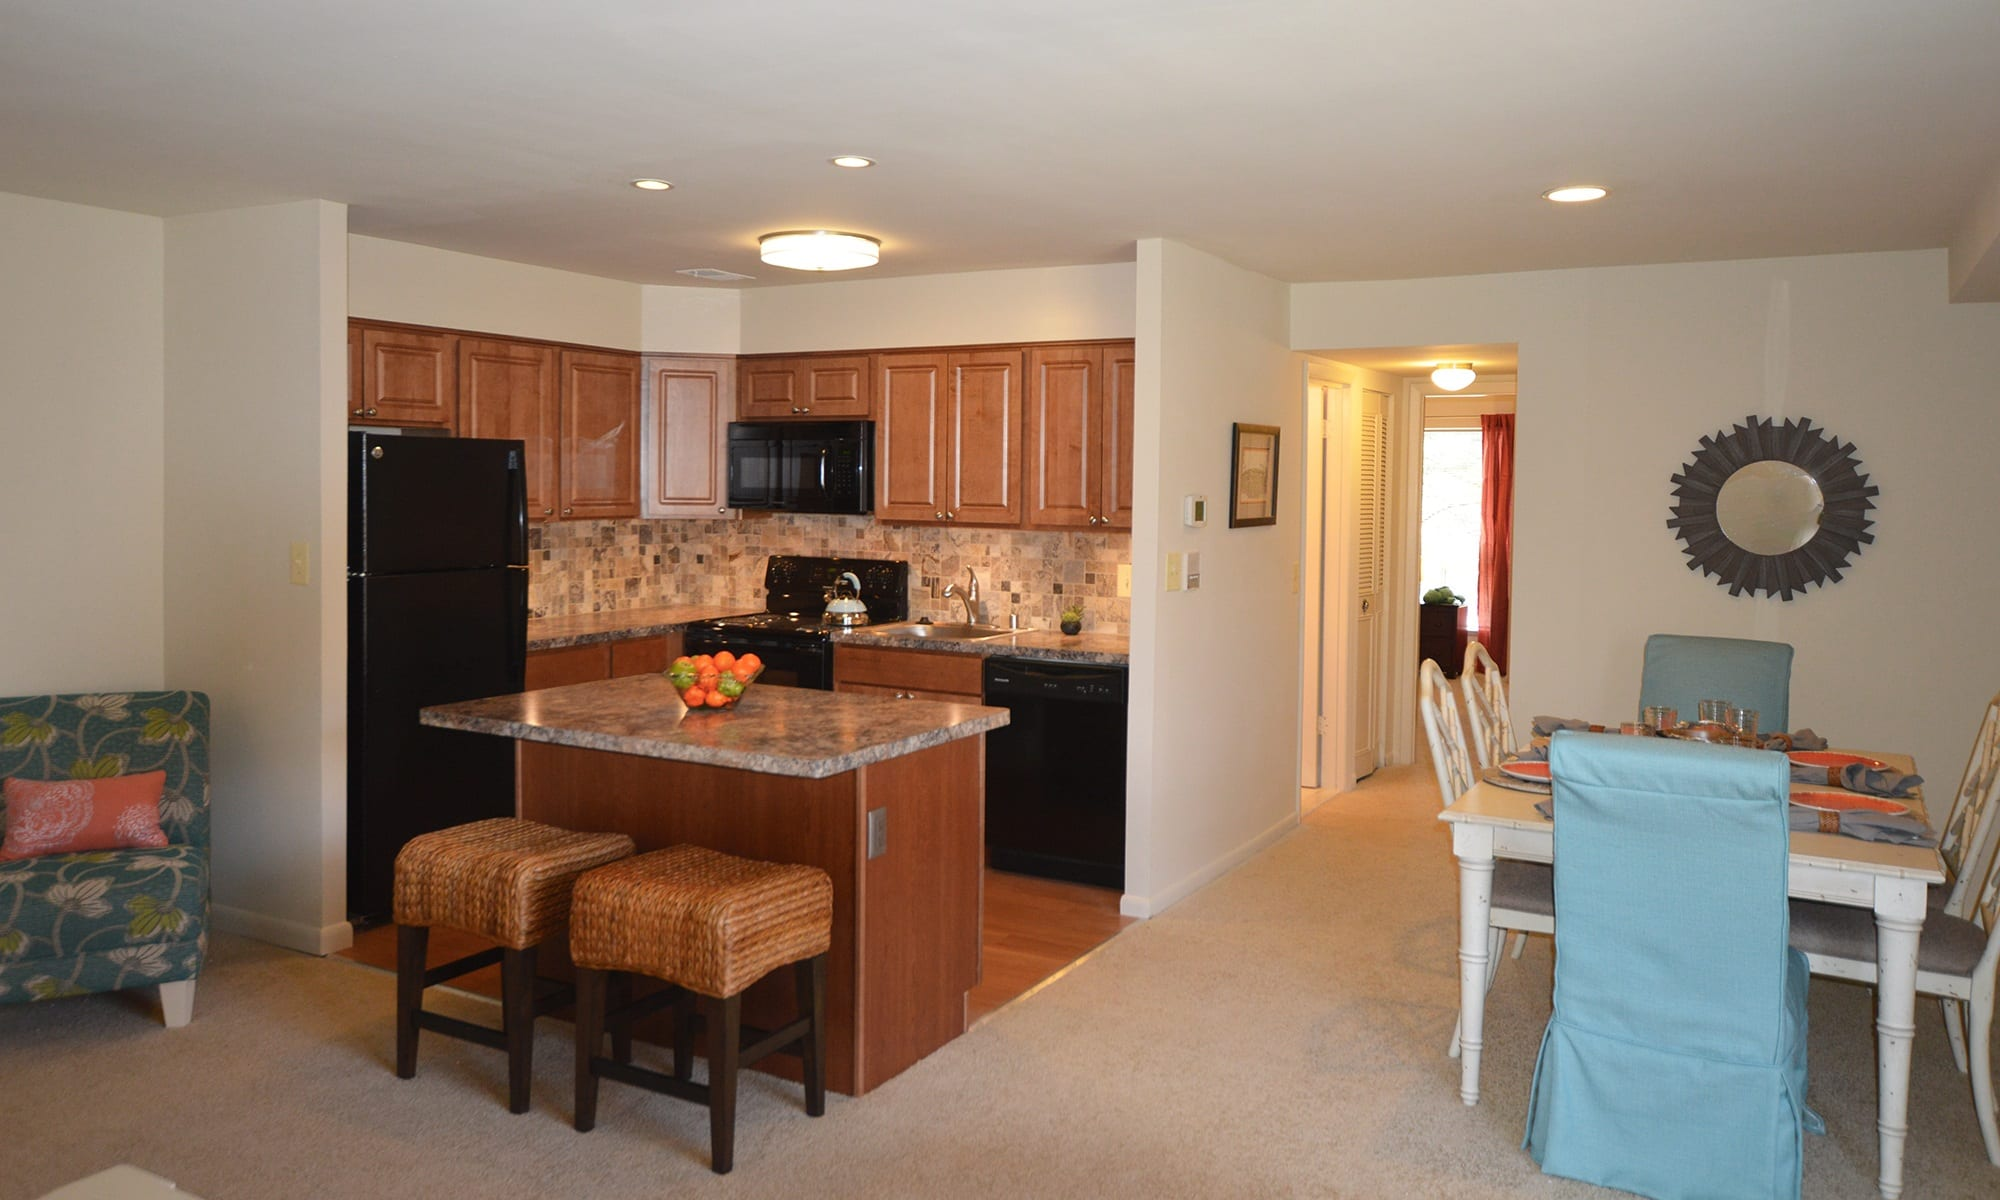 Apartments in Cockeysville, MD